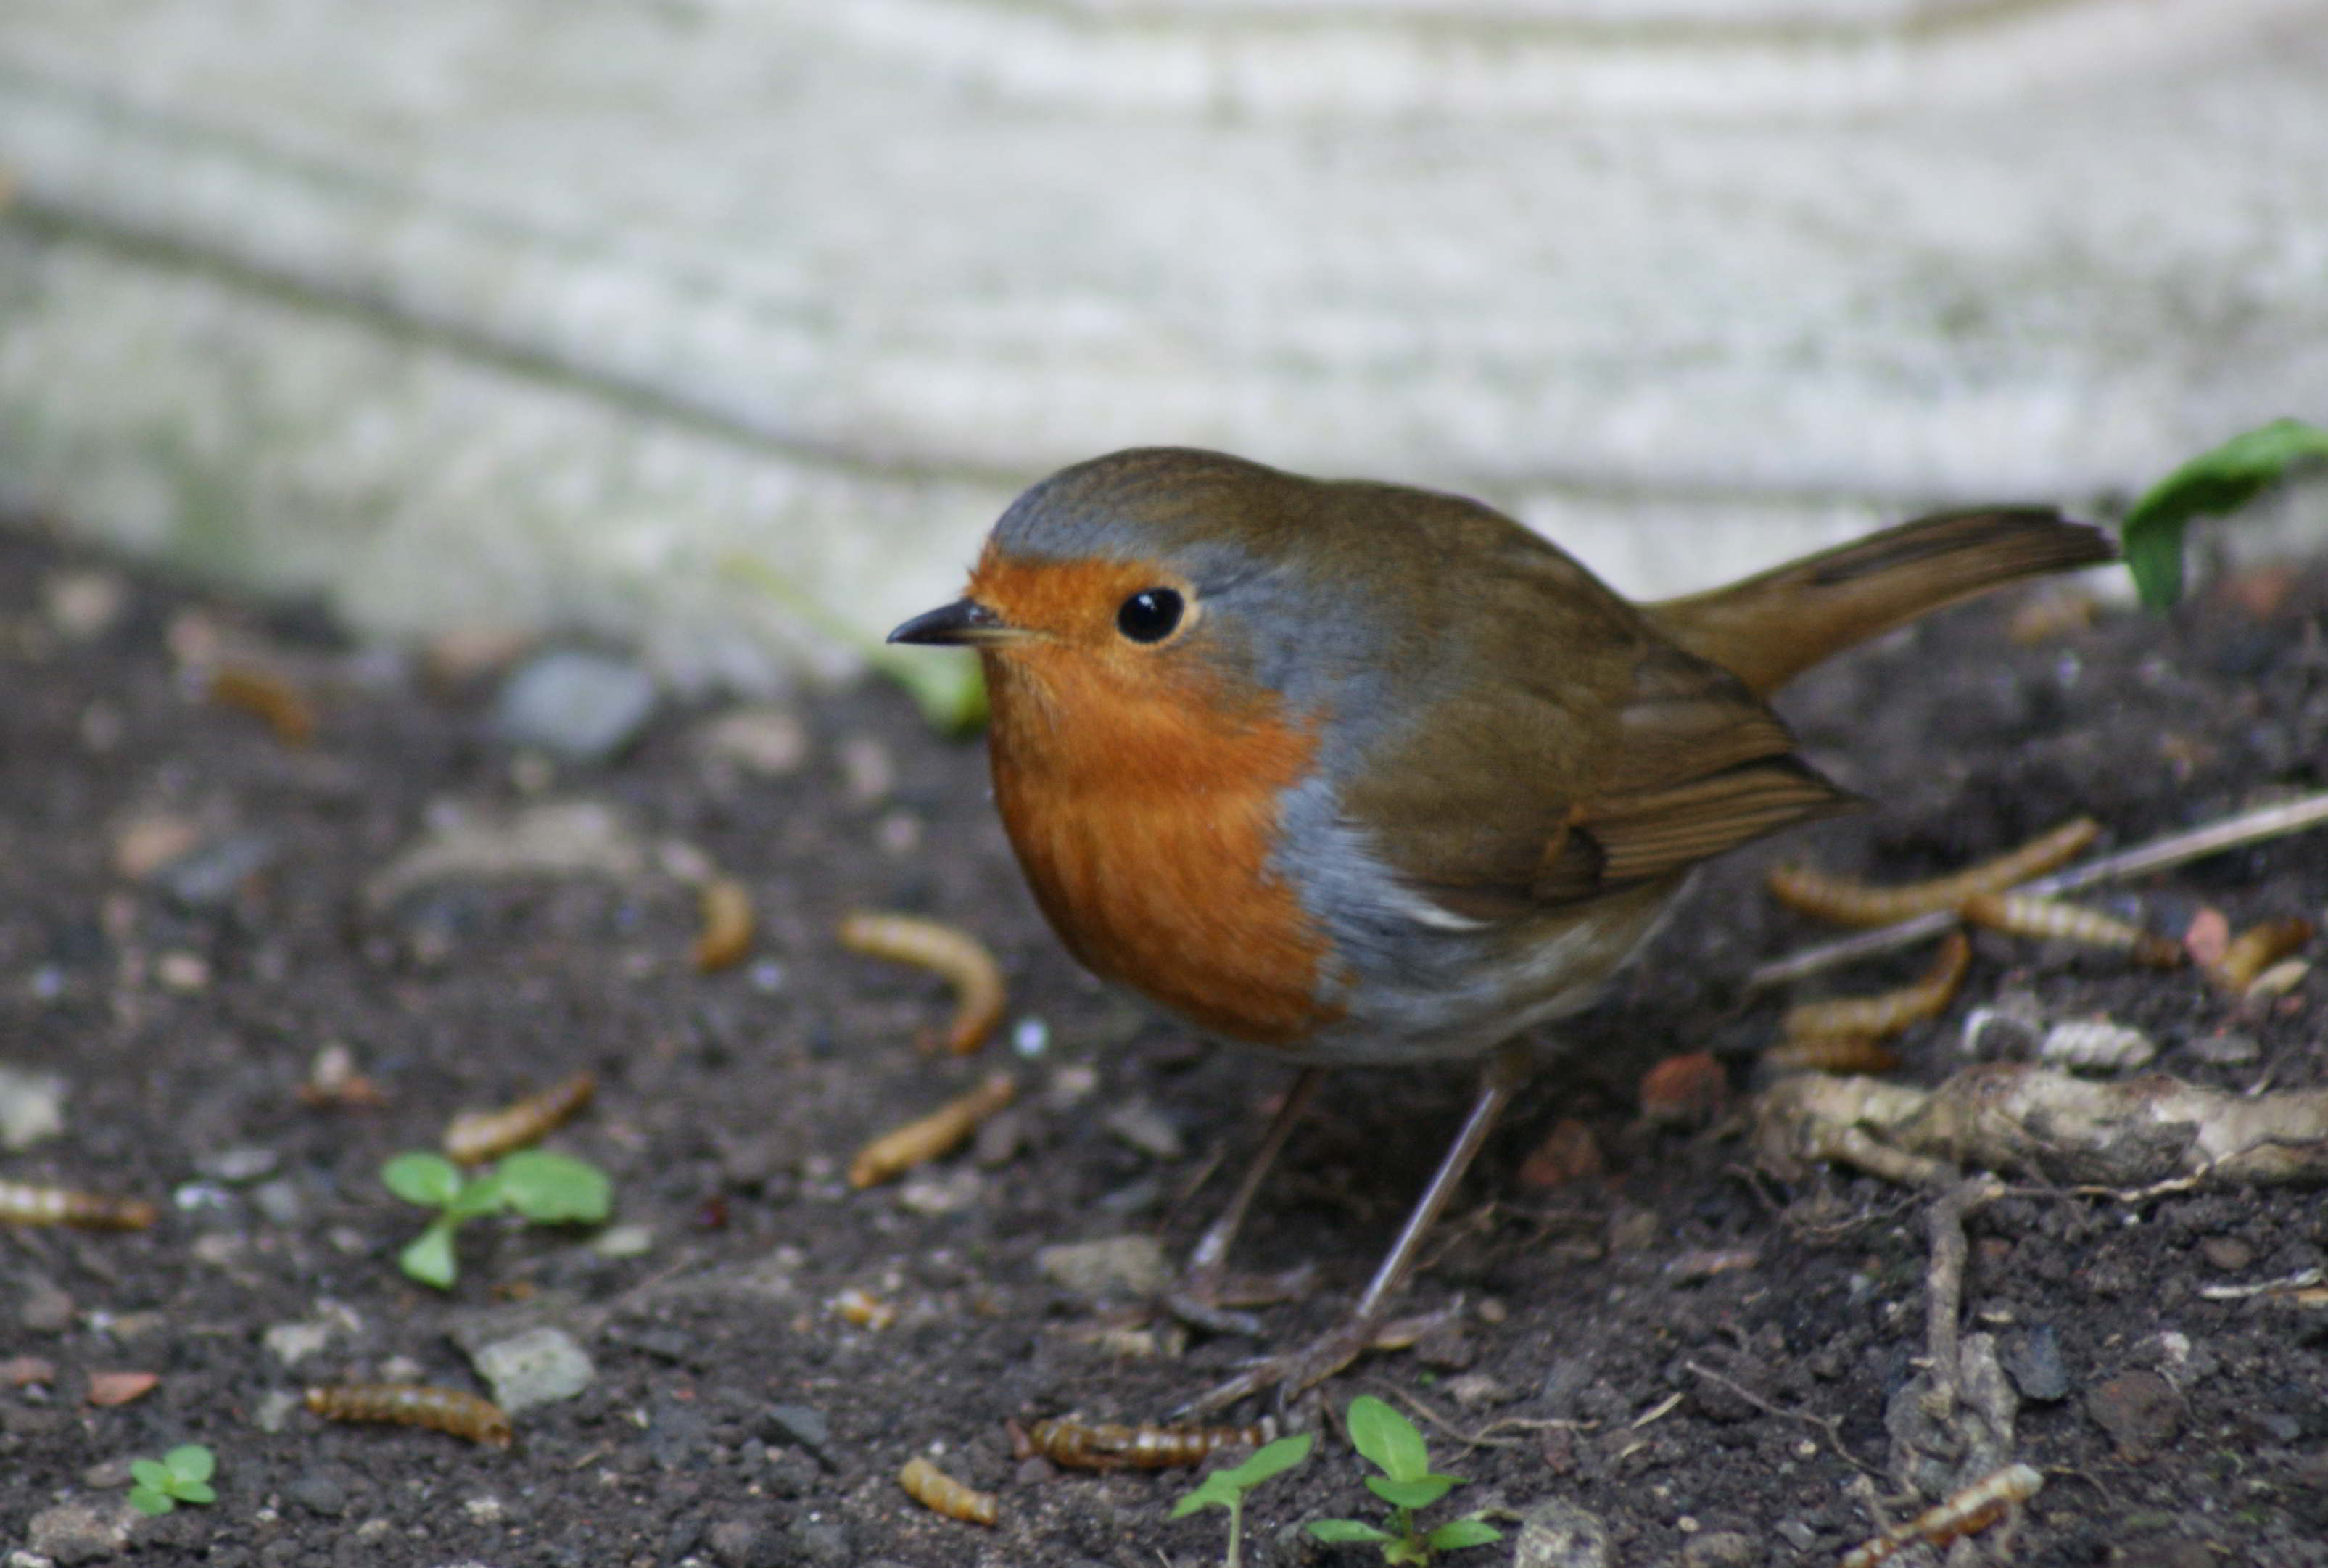 A beautiful robin in the garden at The Old Kiln House looks directly into the camera and smiles